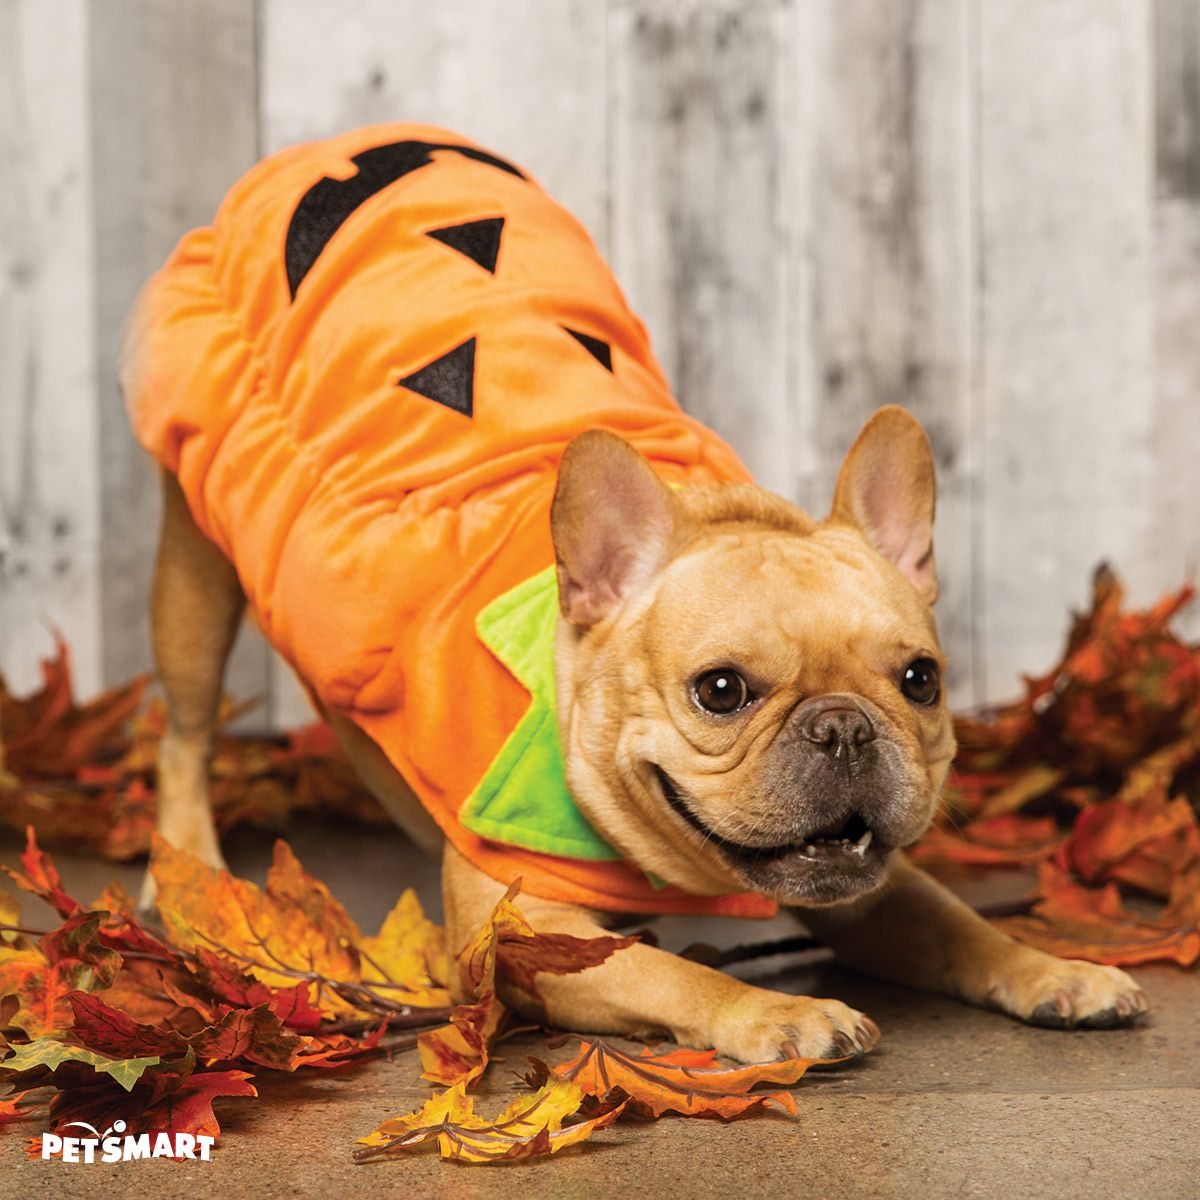 This JackOLantern dog costume is sure to brighten up